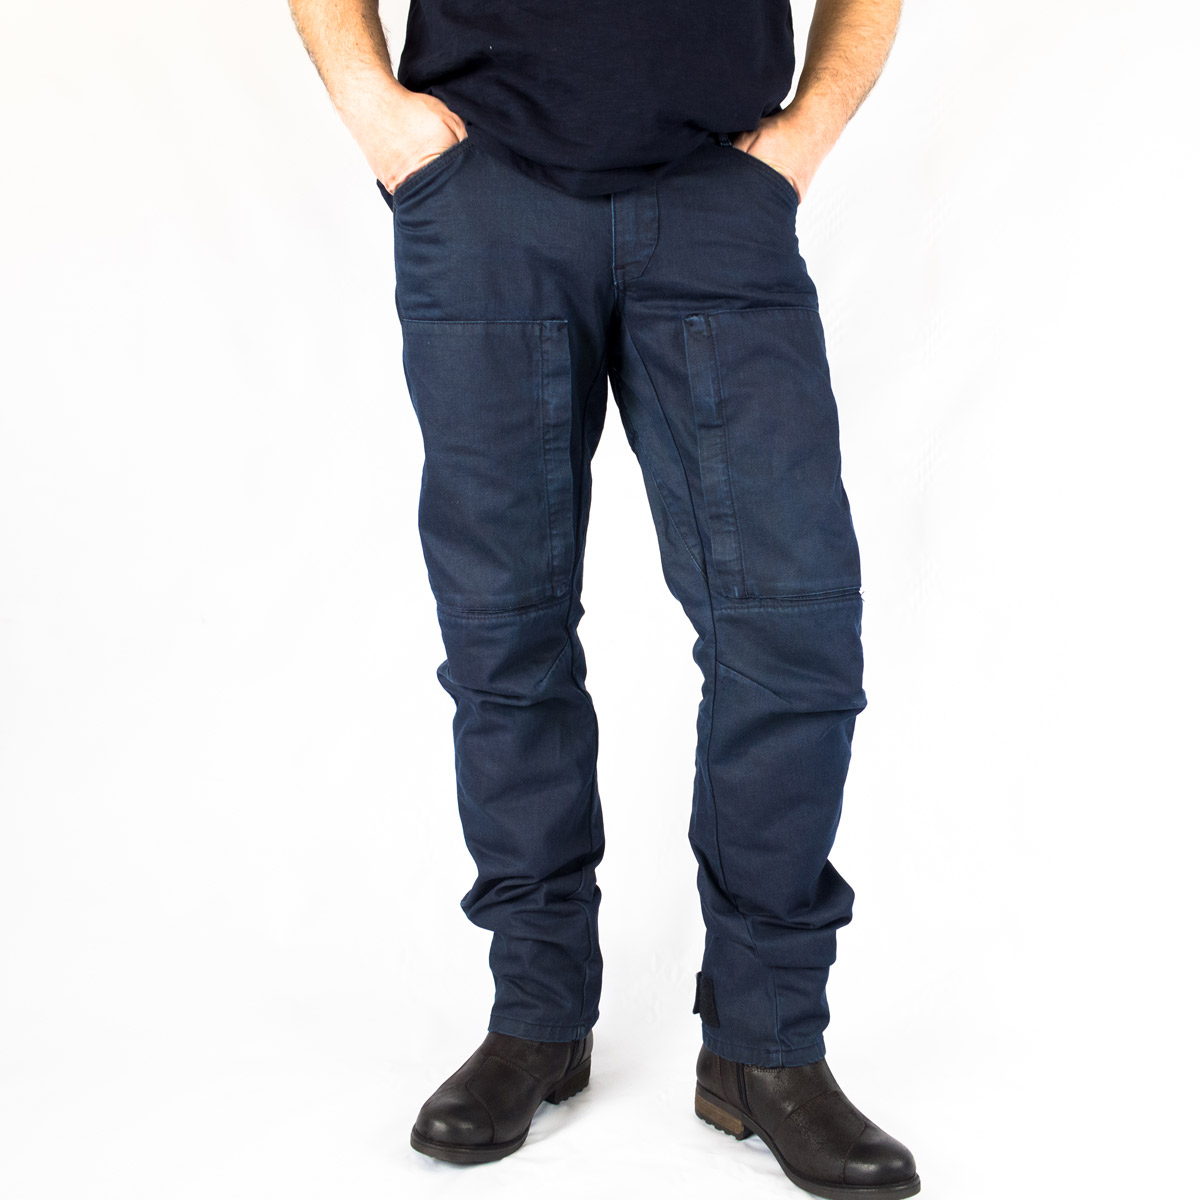 9d53f4a0 Rev It's Recon jeans have all the classic features you expect from  protective jeans, but have been styled to look like workwear thanks to ...